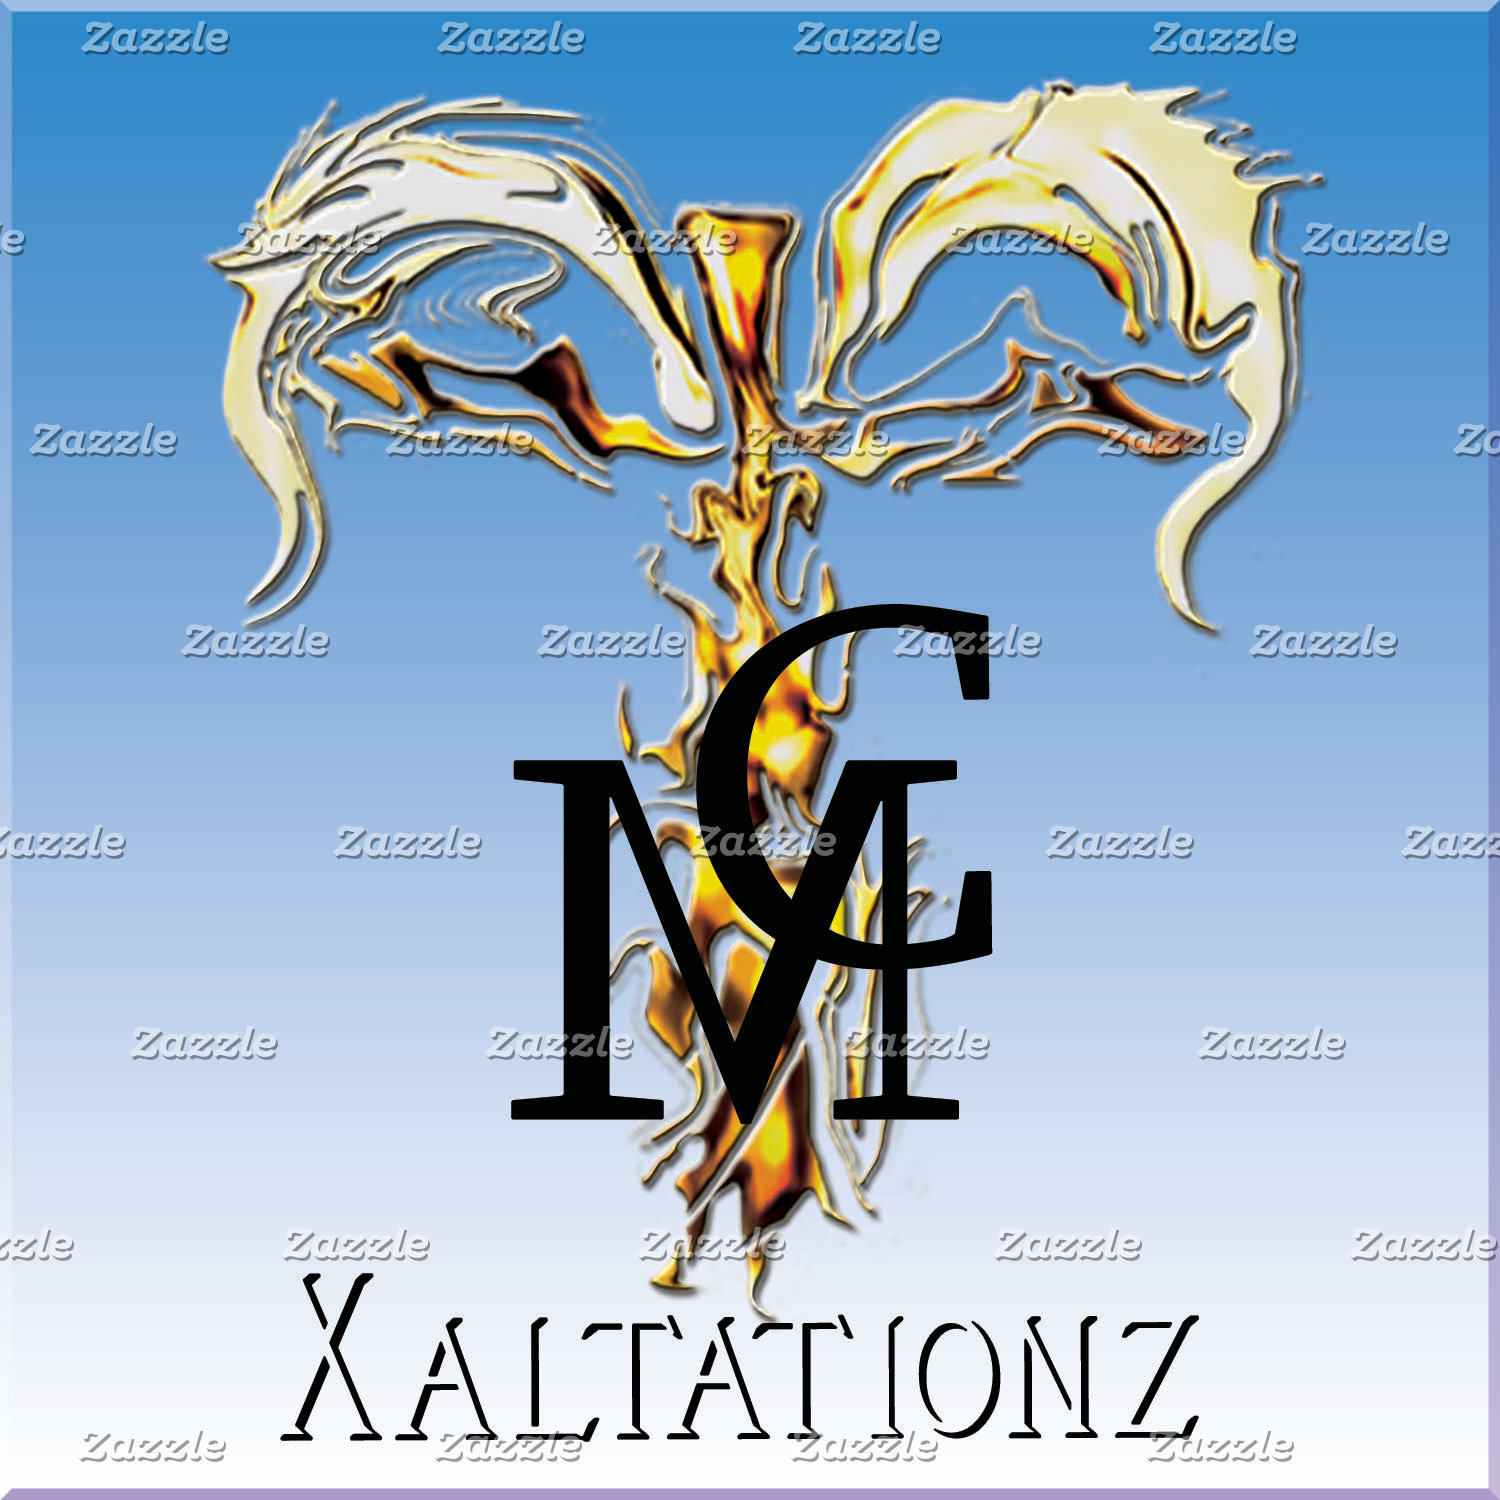 Xaltationz Ladies Apparel™by Michael Crozz